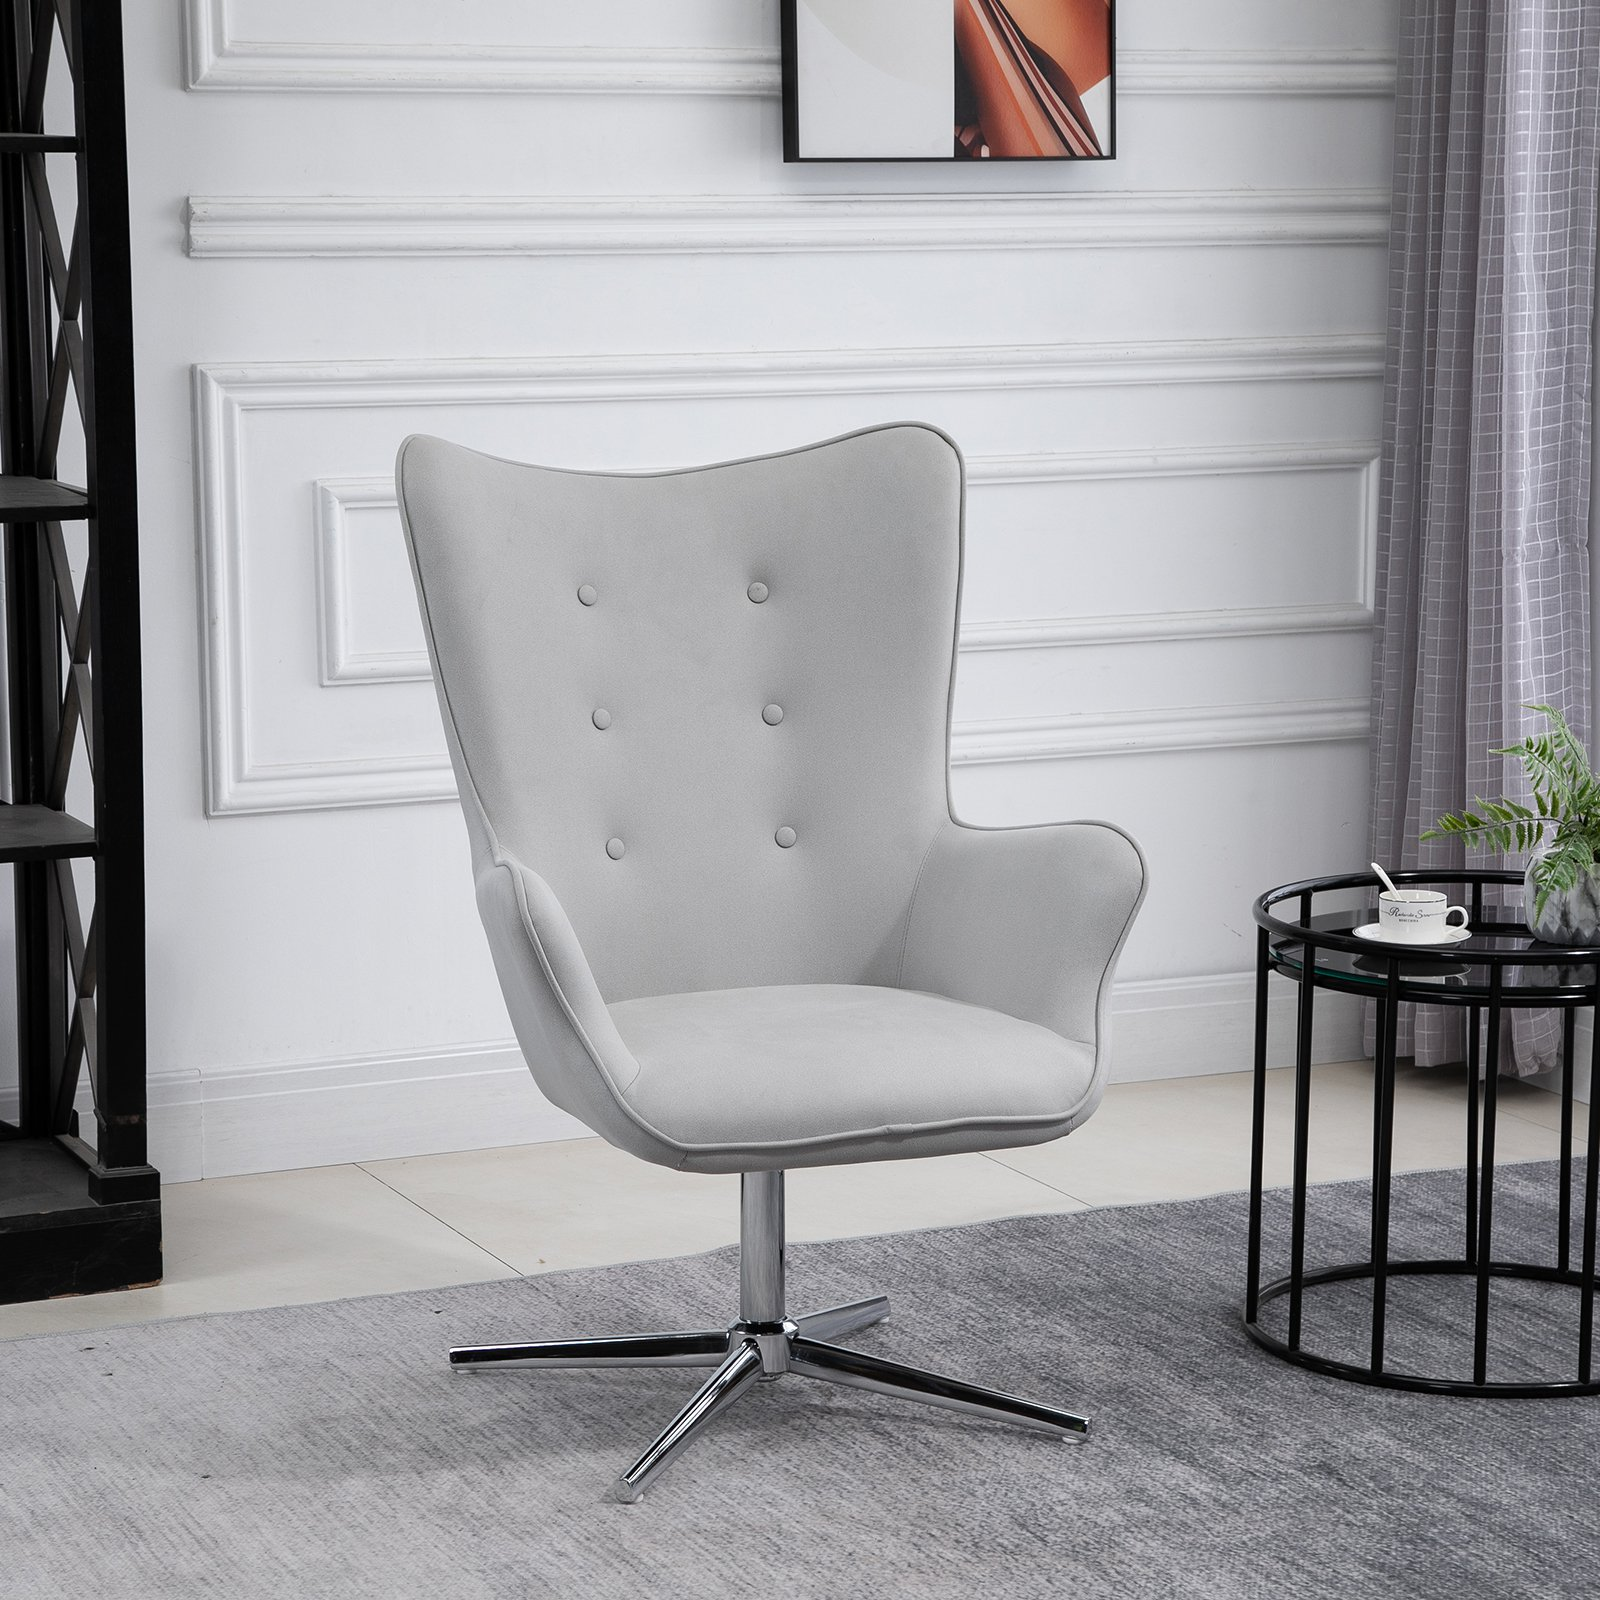 HOMCOM PU Leather Tufted Swivel Accent Chair Grey